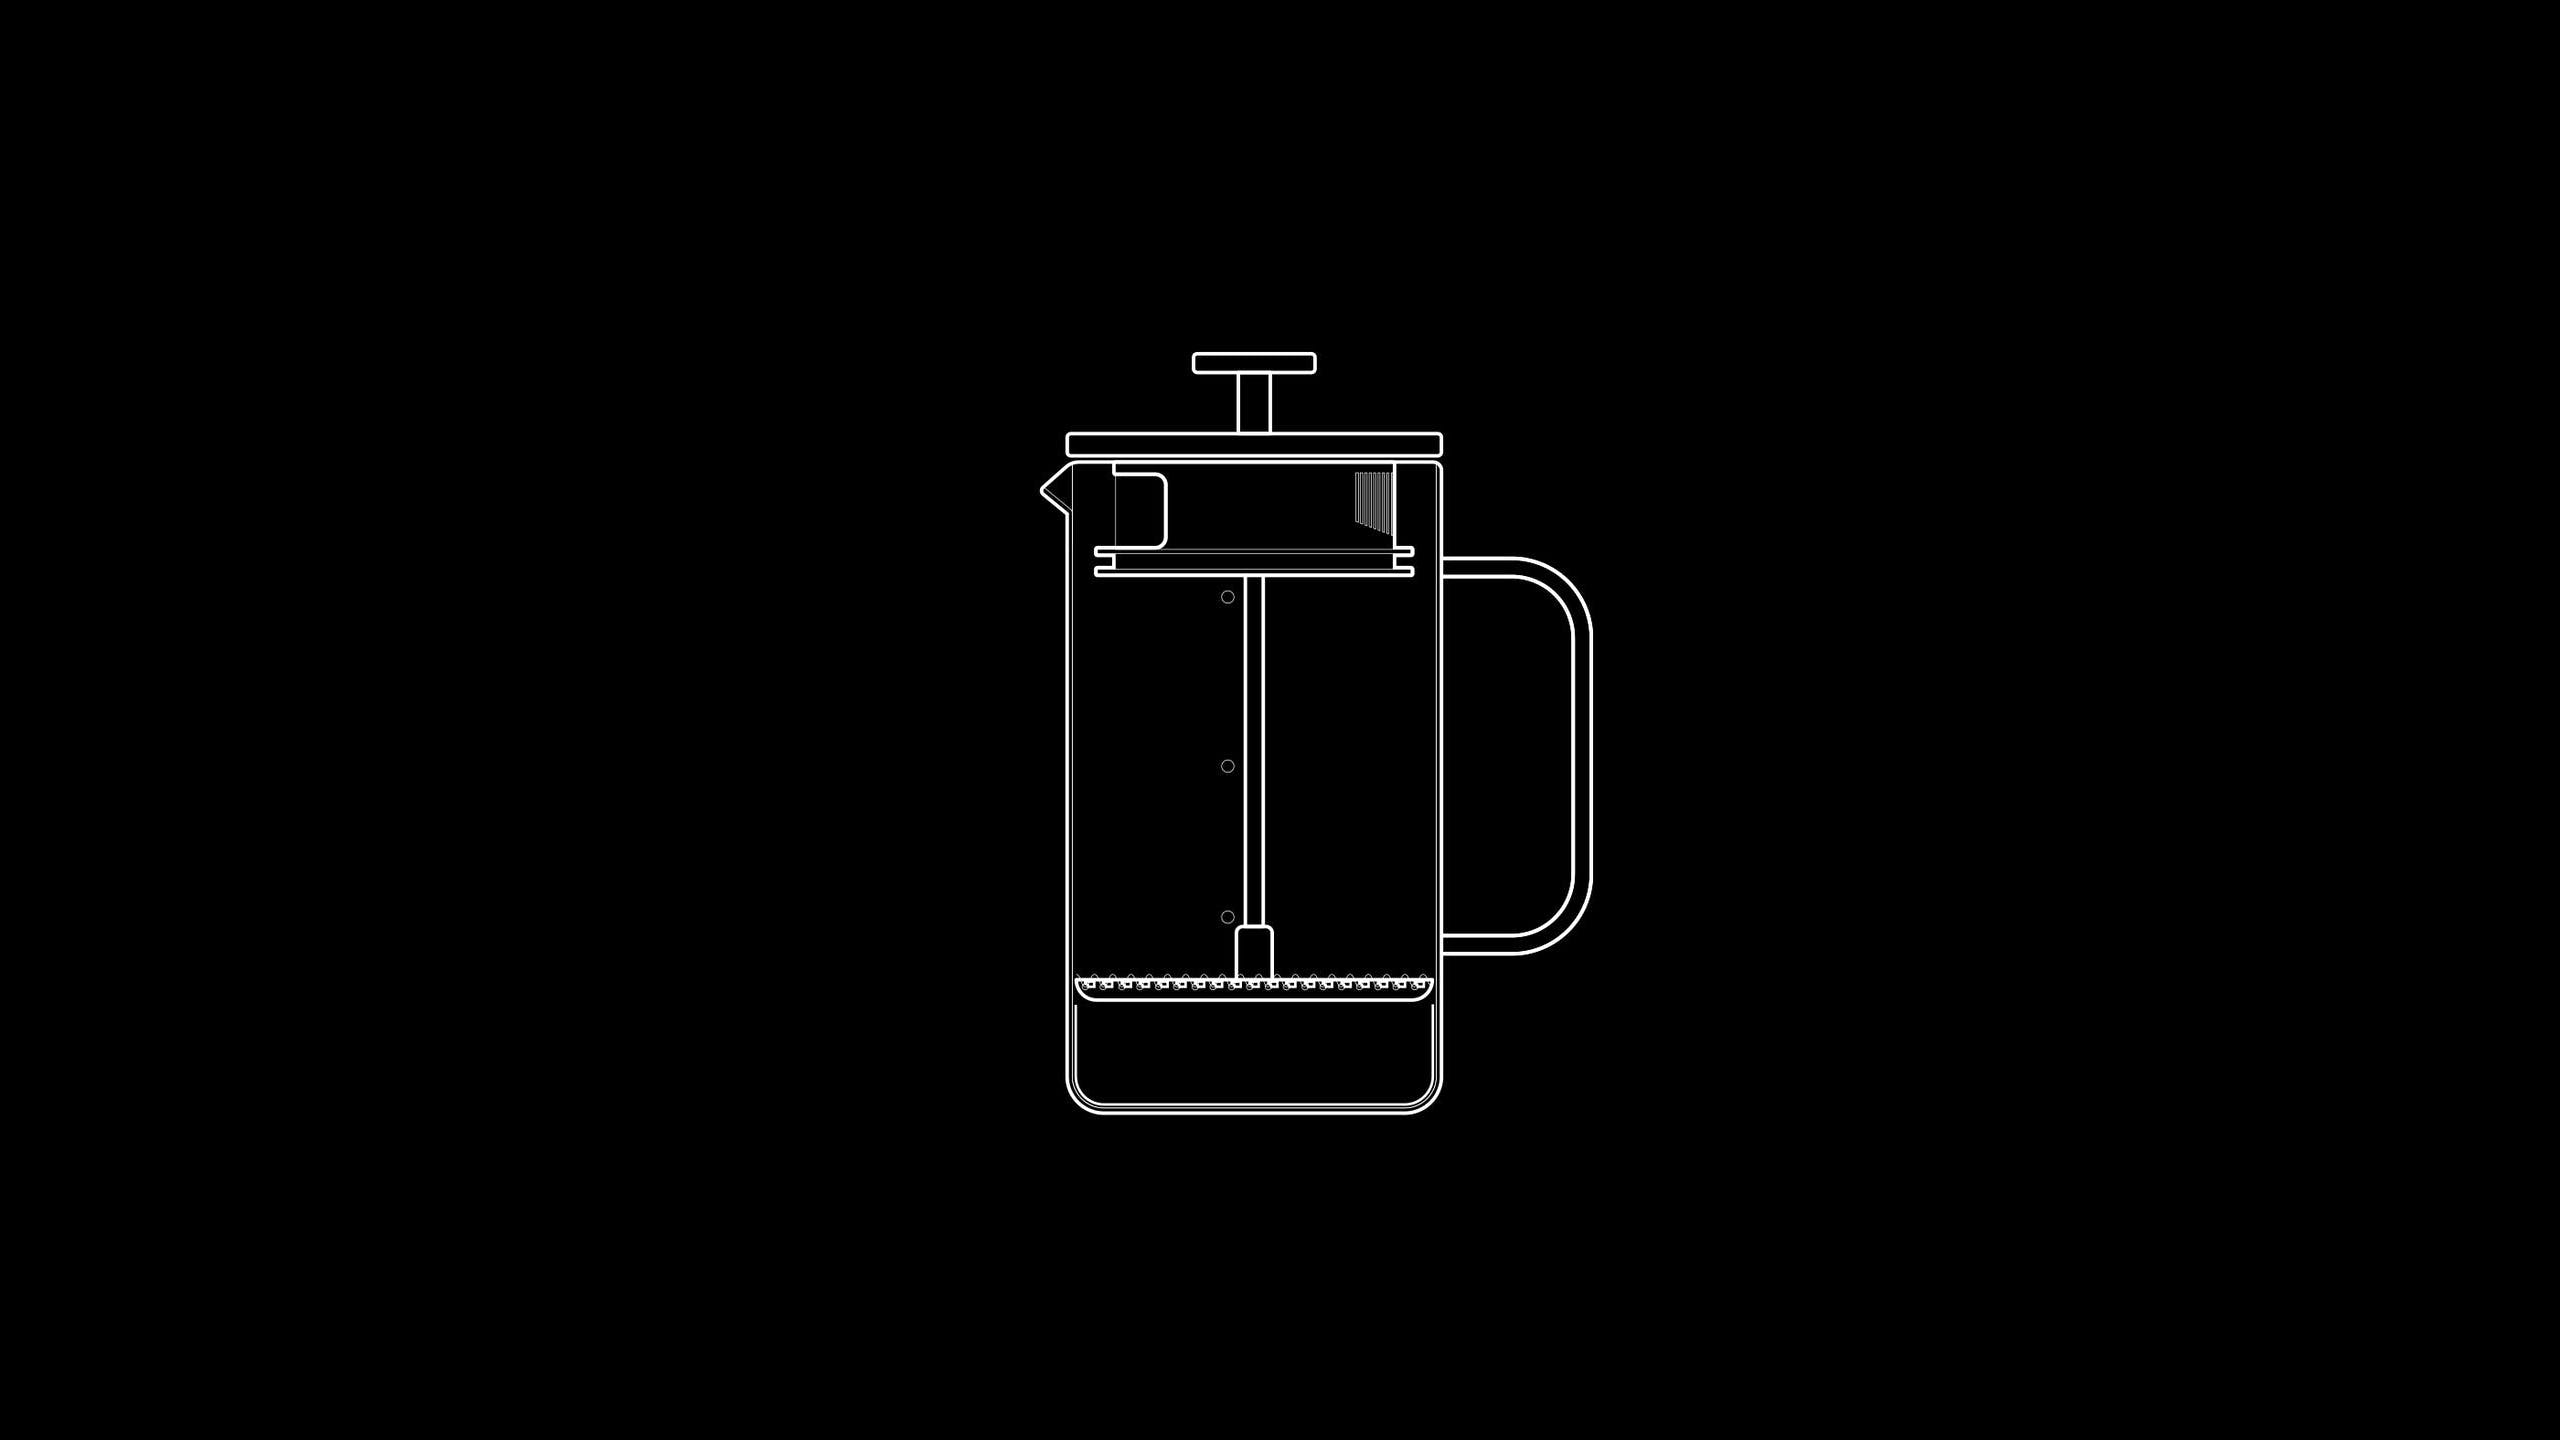 Easy to brew and super consistent, the French Press is very reliable. It's classic and well-engineered design hasn't changed much since its invention in 1929, and it's perfect for making multiple cups of heavy-bodied coffee in 4 minutes.